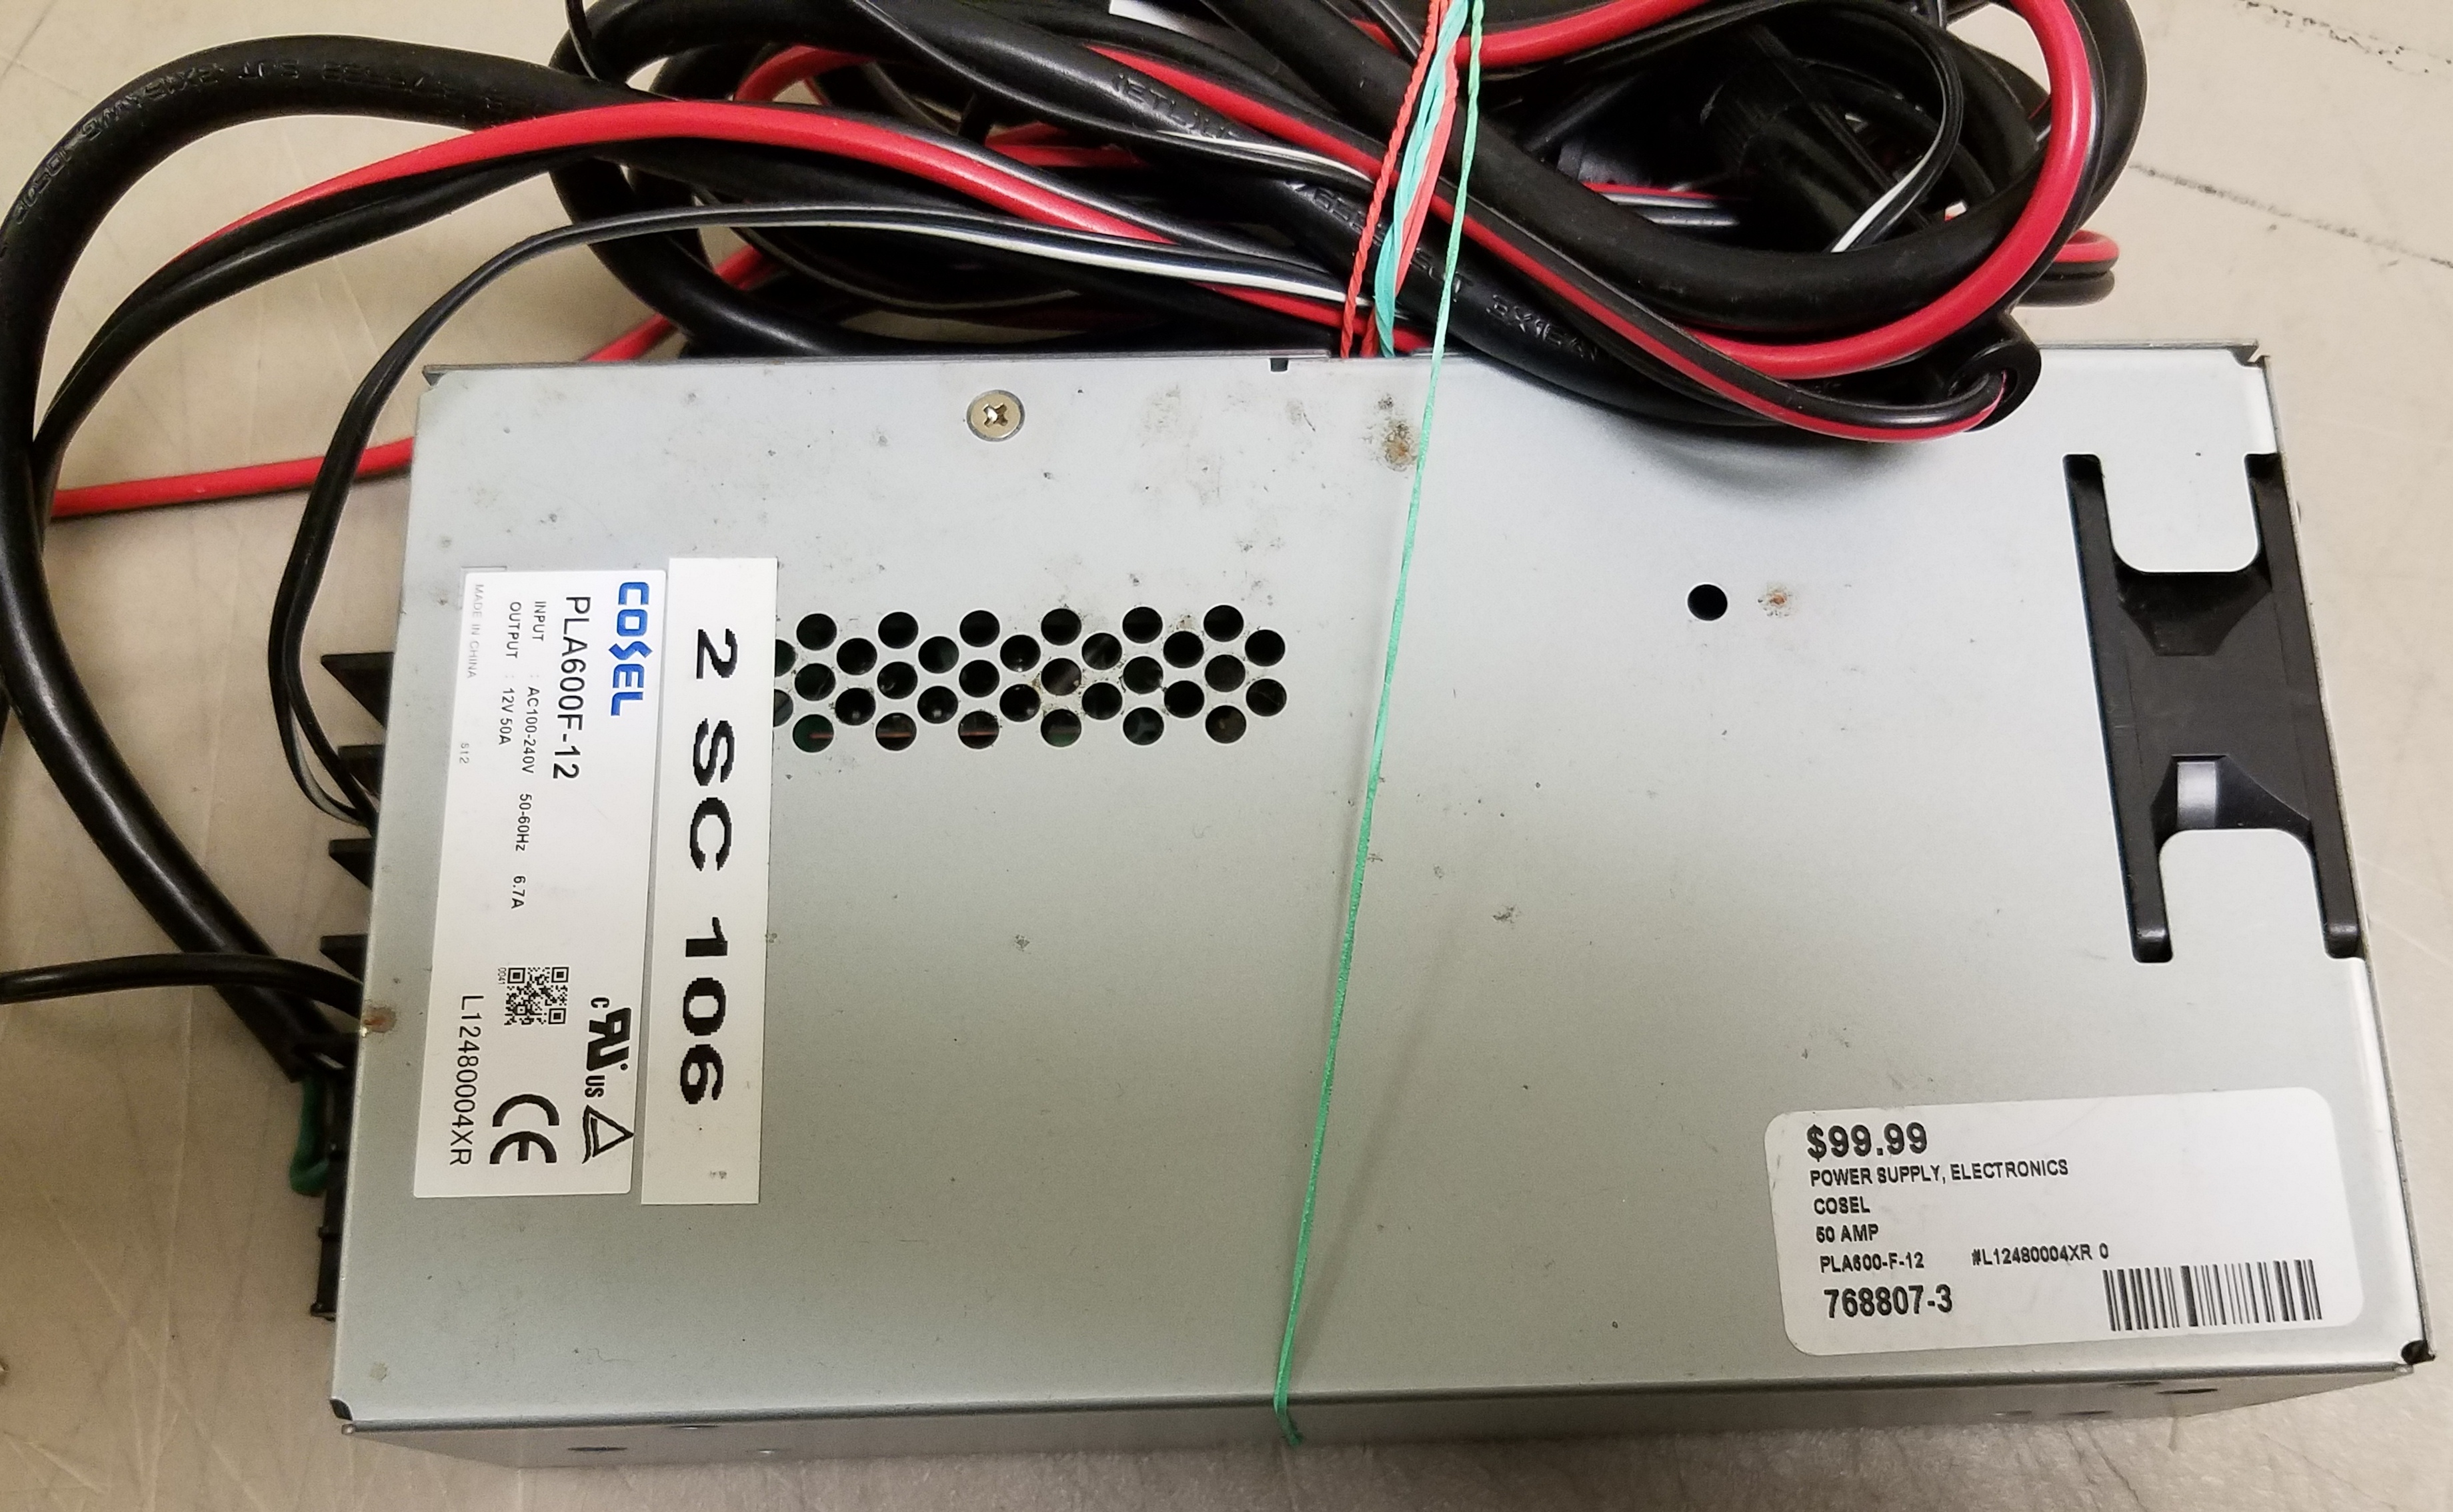 COSEL - PLA600-F-12 - 50 AMP POWER SUPPLY